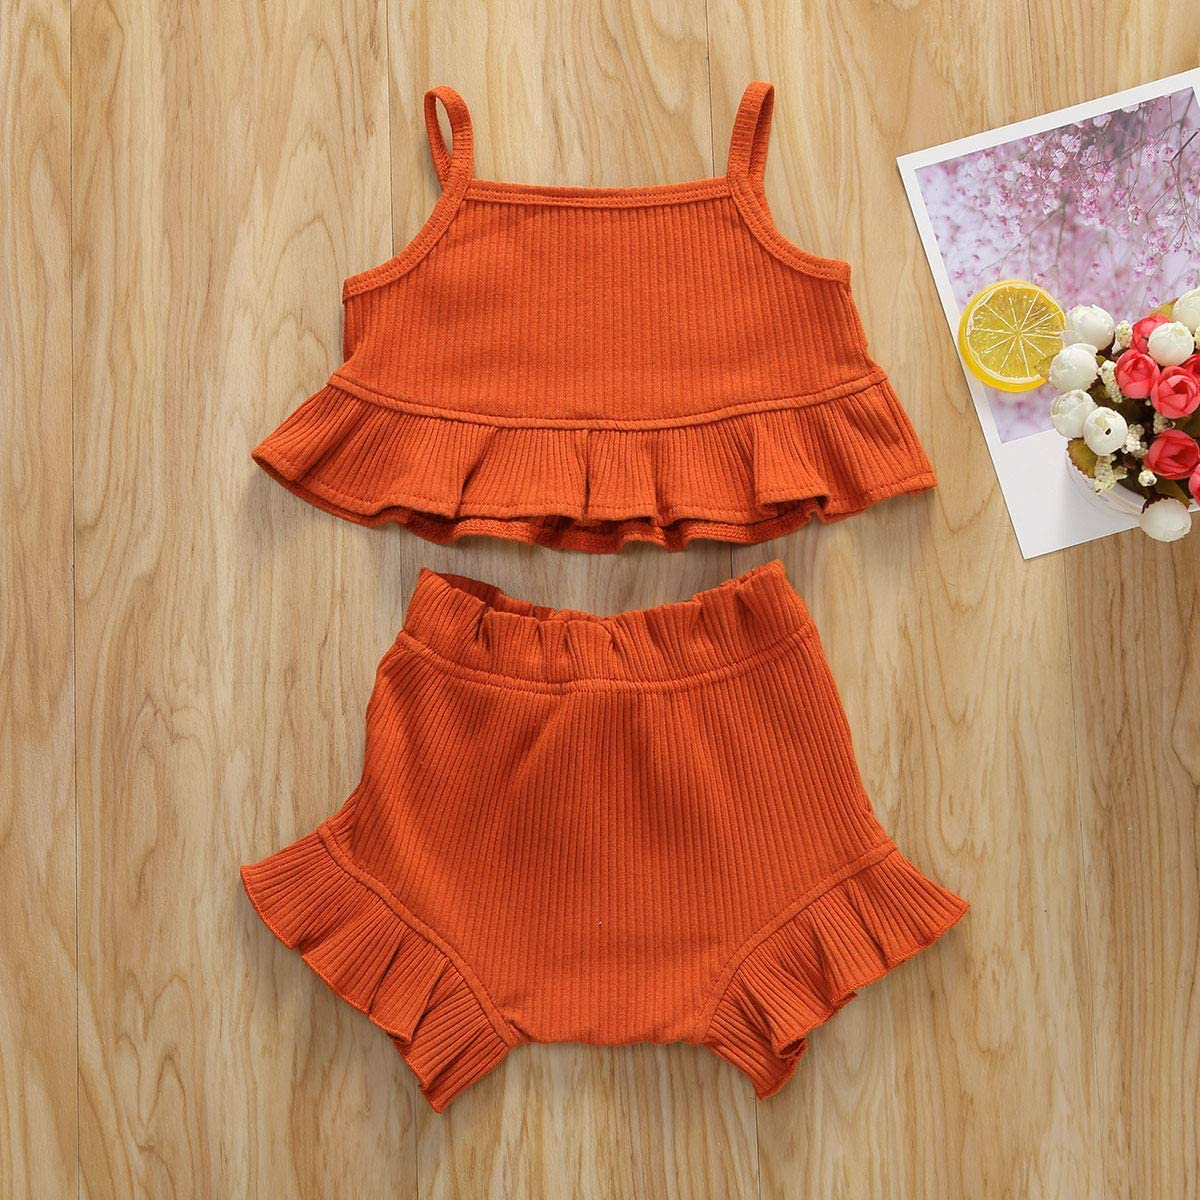 Wench Toddler Baby Girls Outfits Clothes Set Knitted Vest Shirt Short Pants Sets Summer Outfit Clothes 2PCS